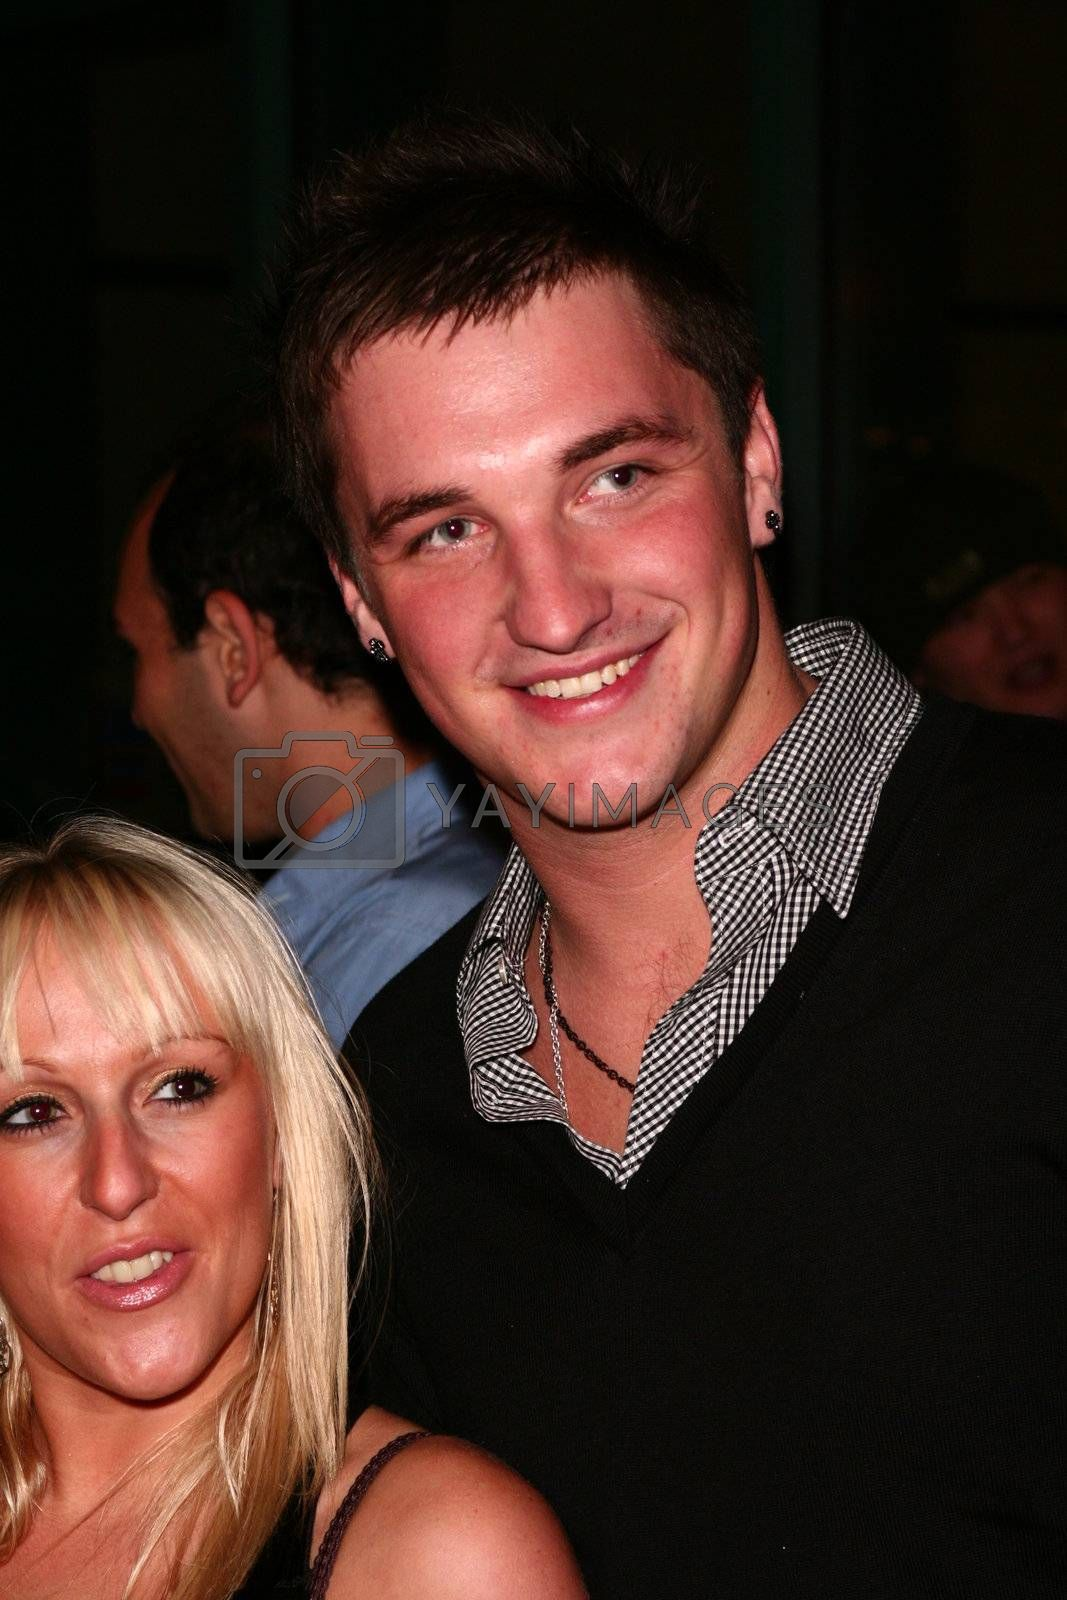 Nikki Grahame and Liam McGough attends the OK Perfume Launch Party at Crystal Club on November 1, 2007 in London, United Kingdom.